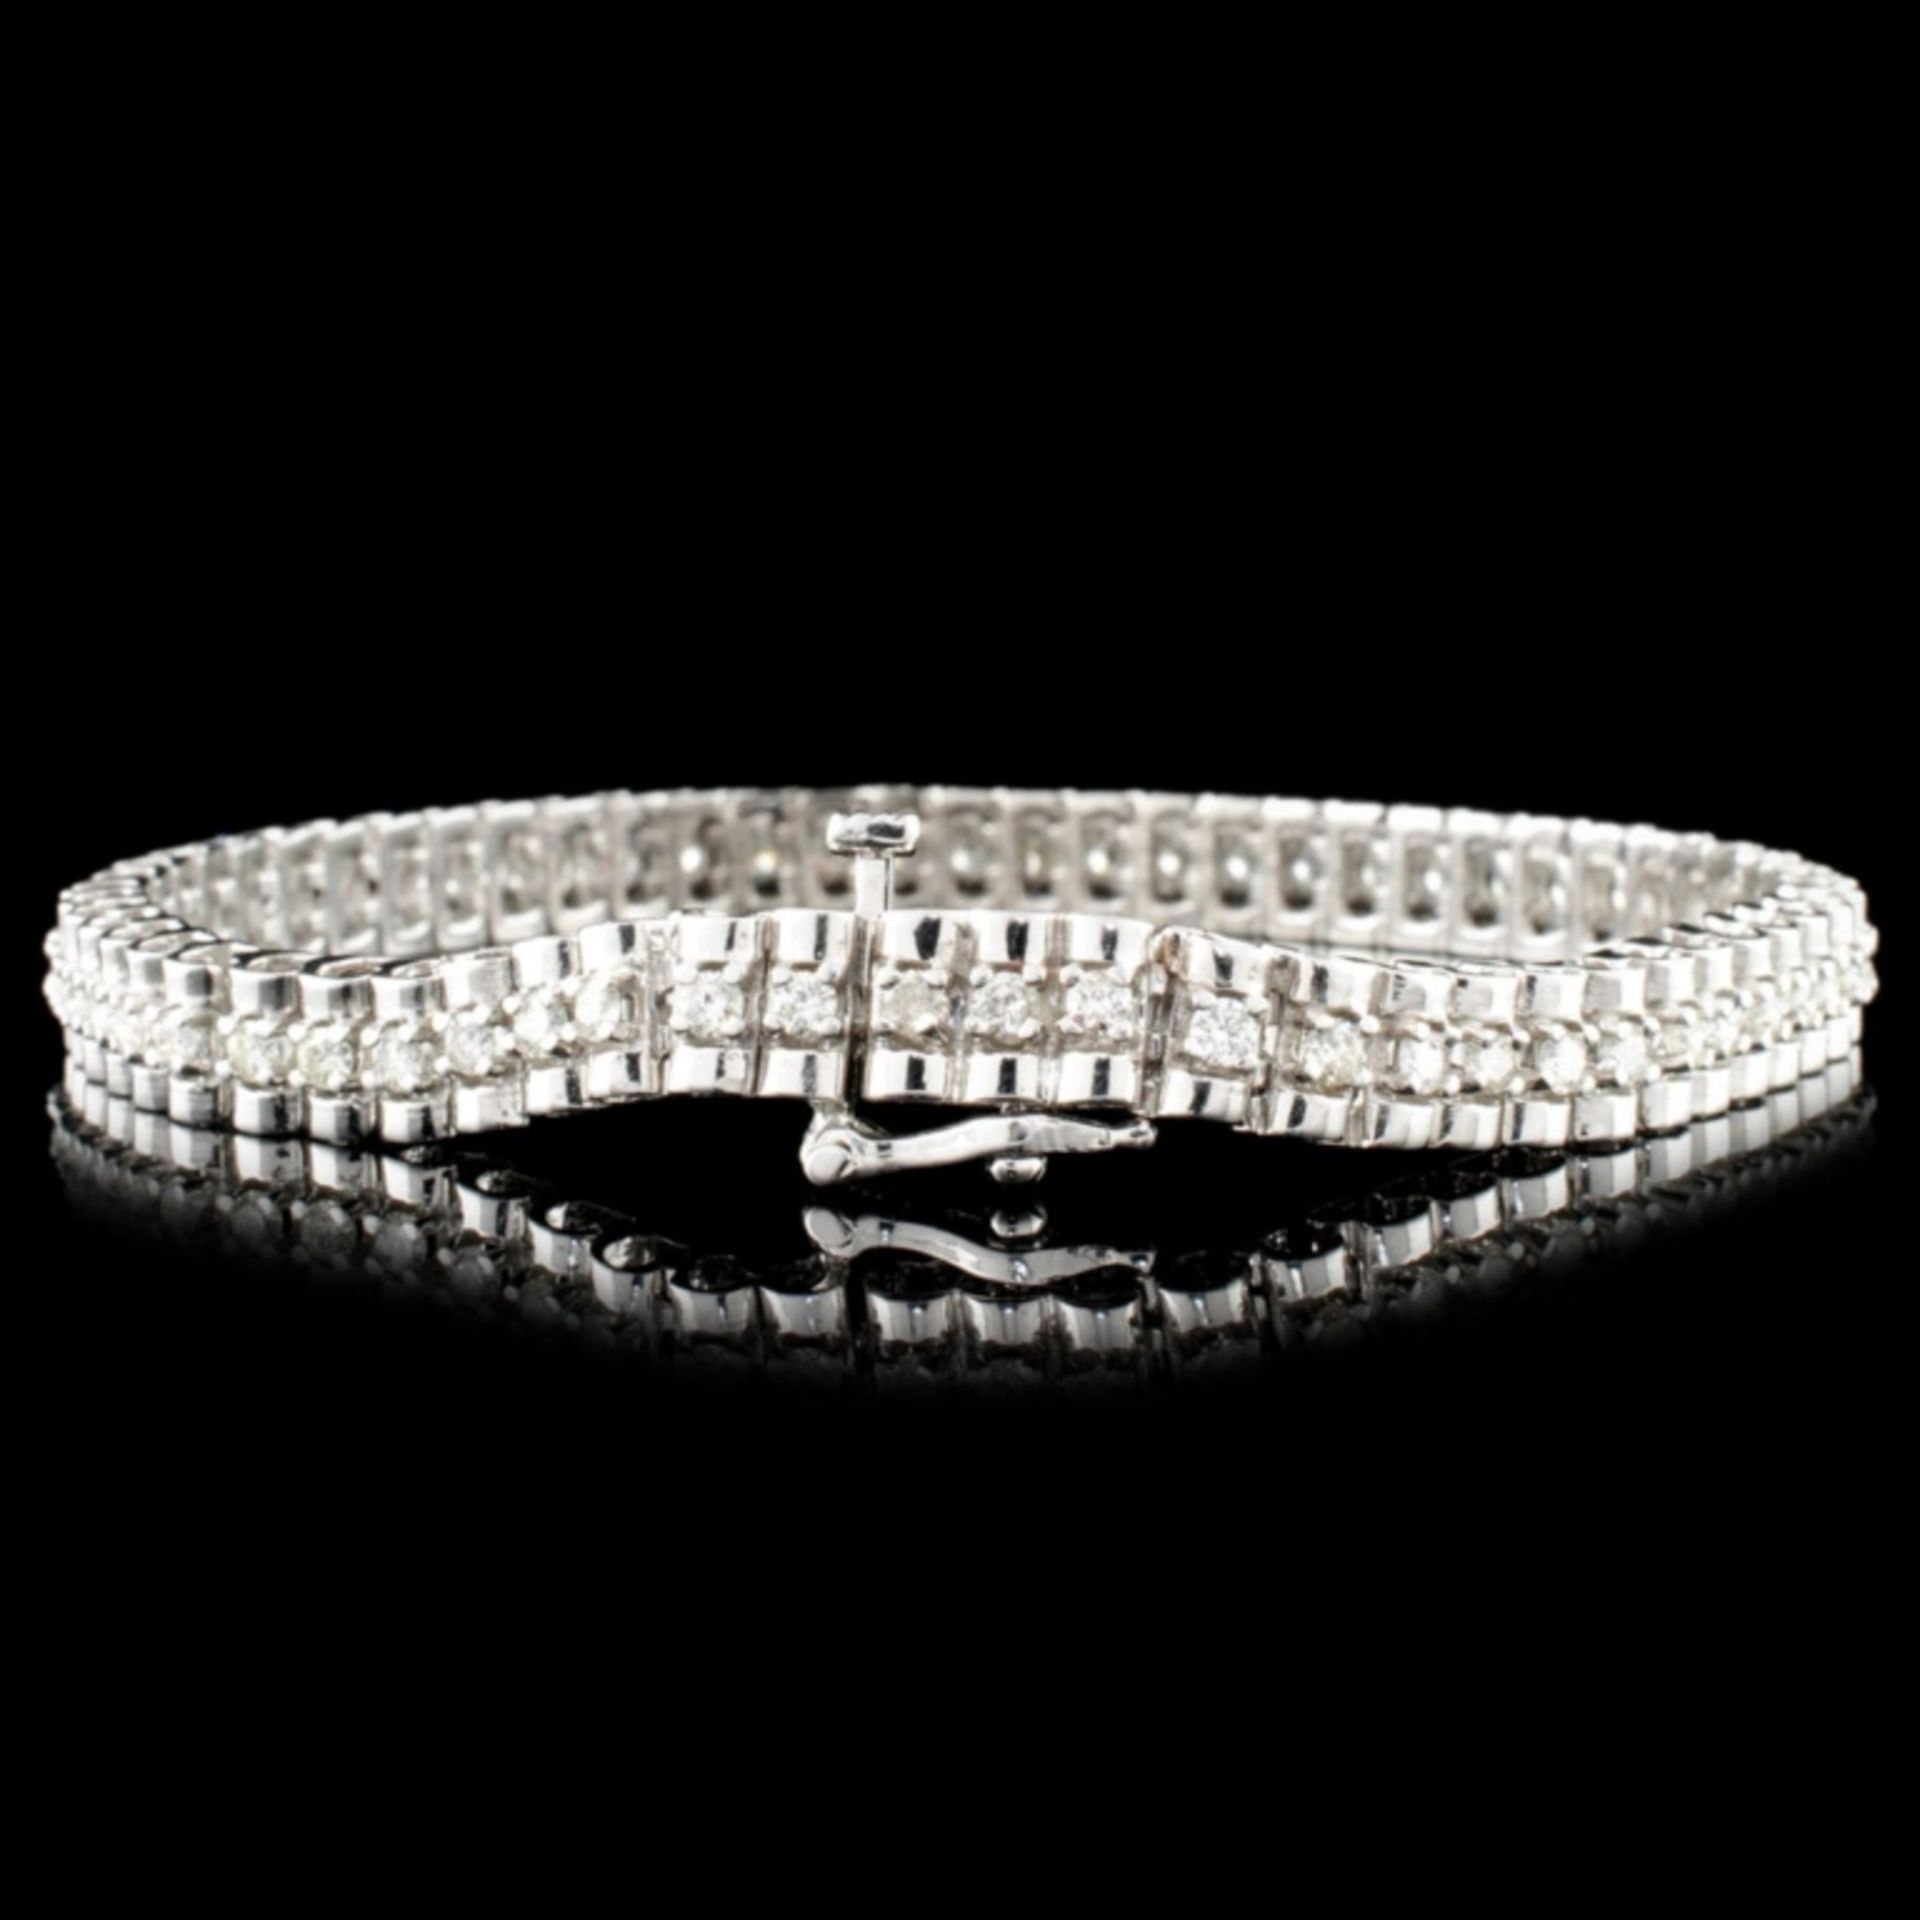 14K Gold 2.00ctw Diamond Bracelet - Image 2 of 4